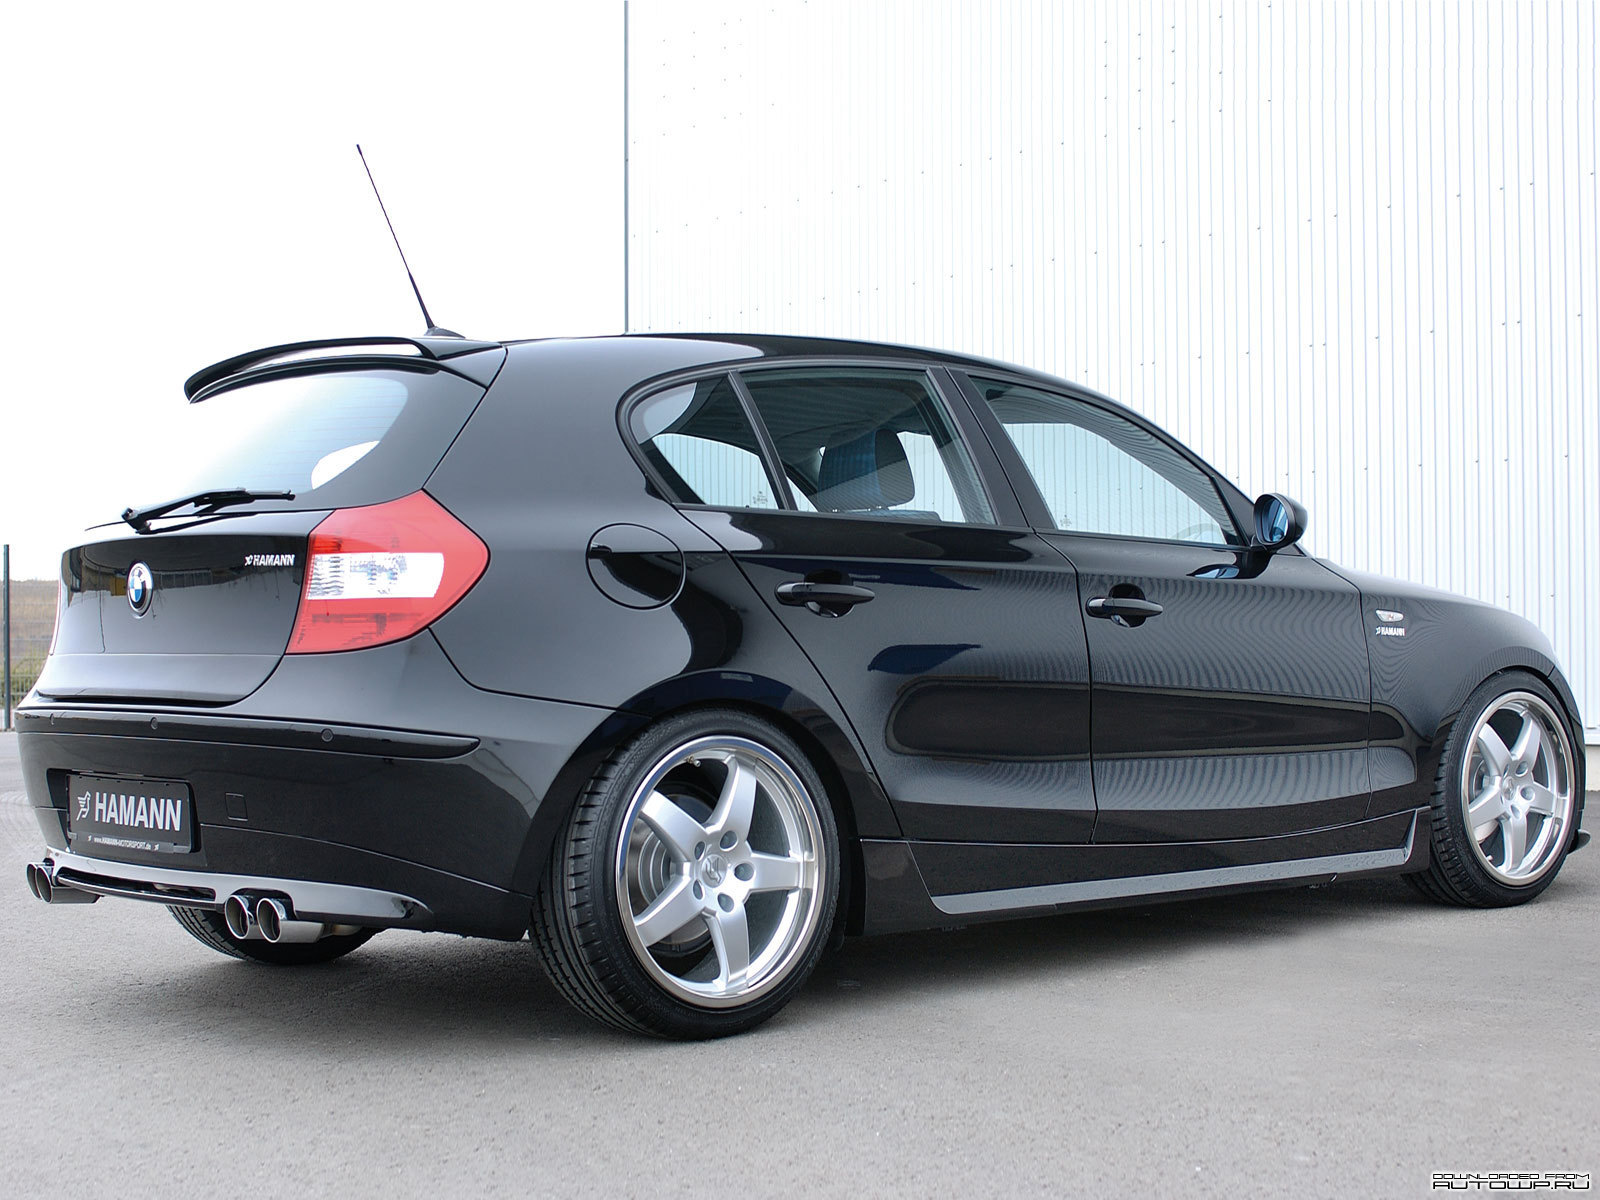 hamann bmw 1 series 5 door e87 picture 59523 hamann